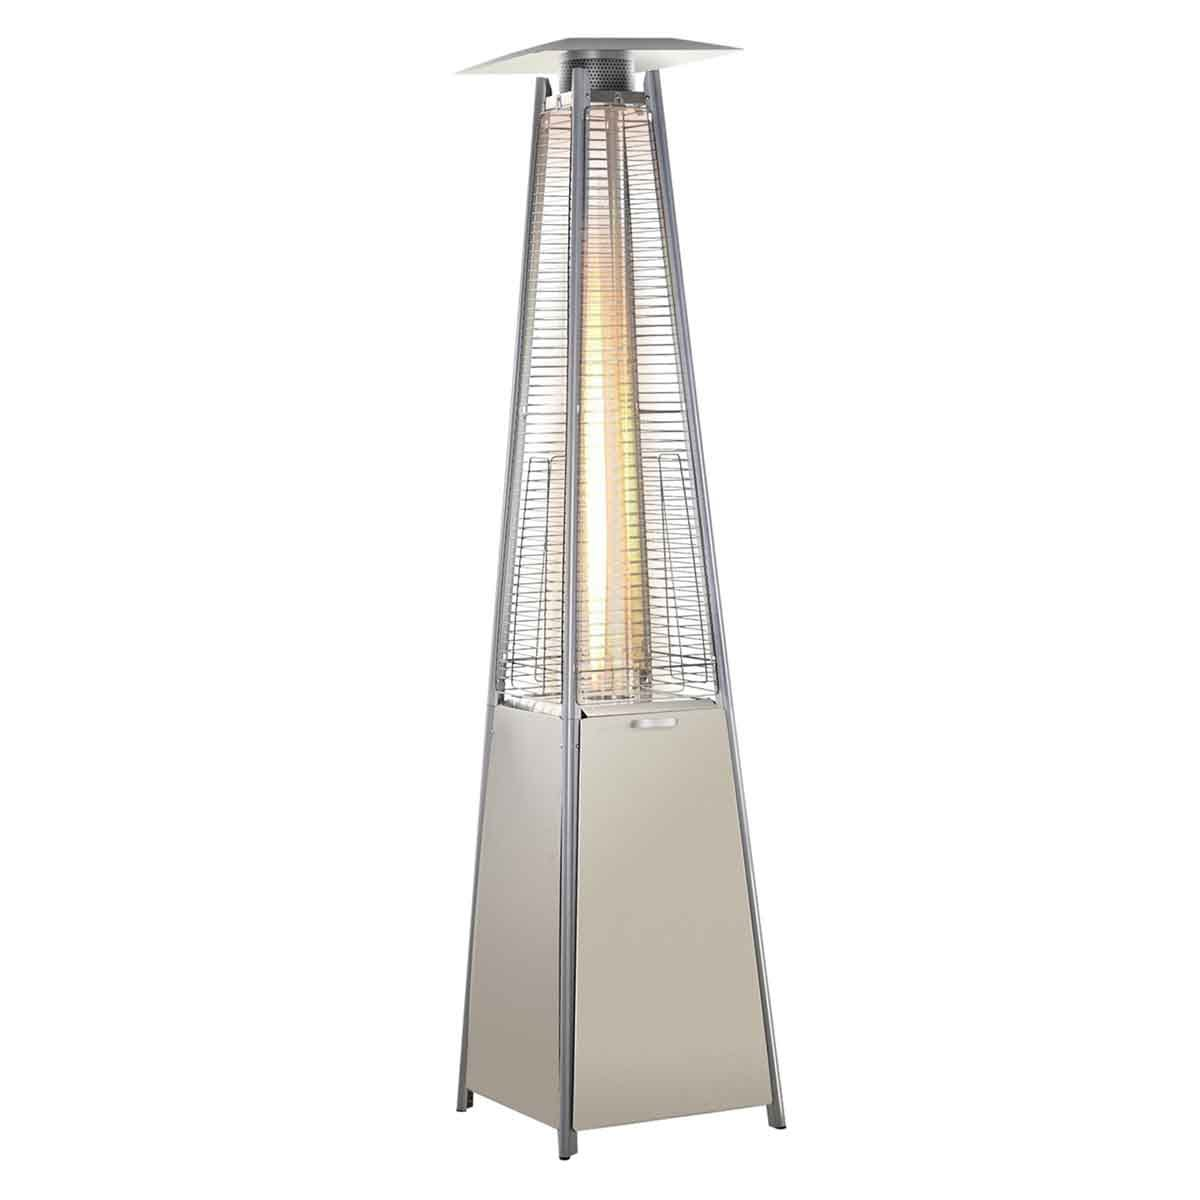 Outsunny 10.5KW Pyramid Patio Gas Heater